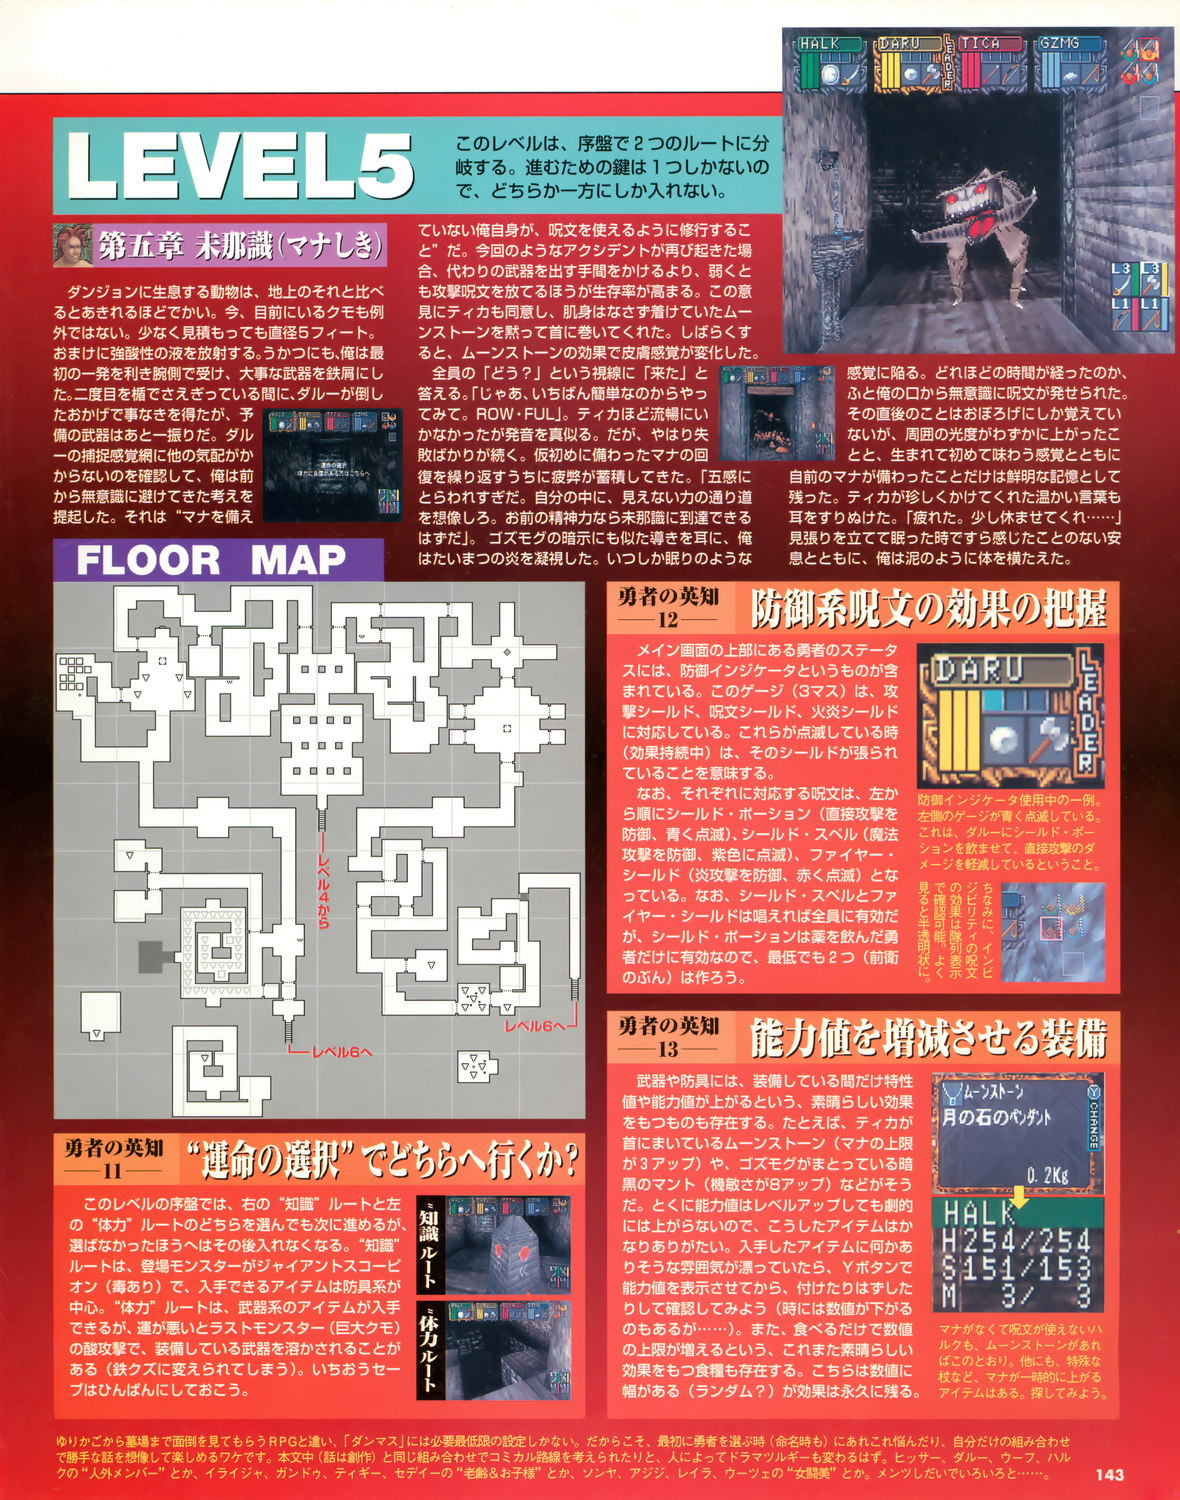 Dungeon Master Nexus Guide published in Japanese magazine 'Sega Saturn Magazine', Vol 12 24 April 1998, Page 143